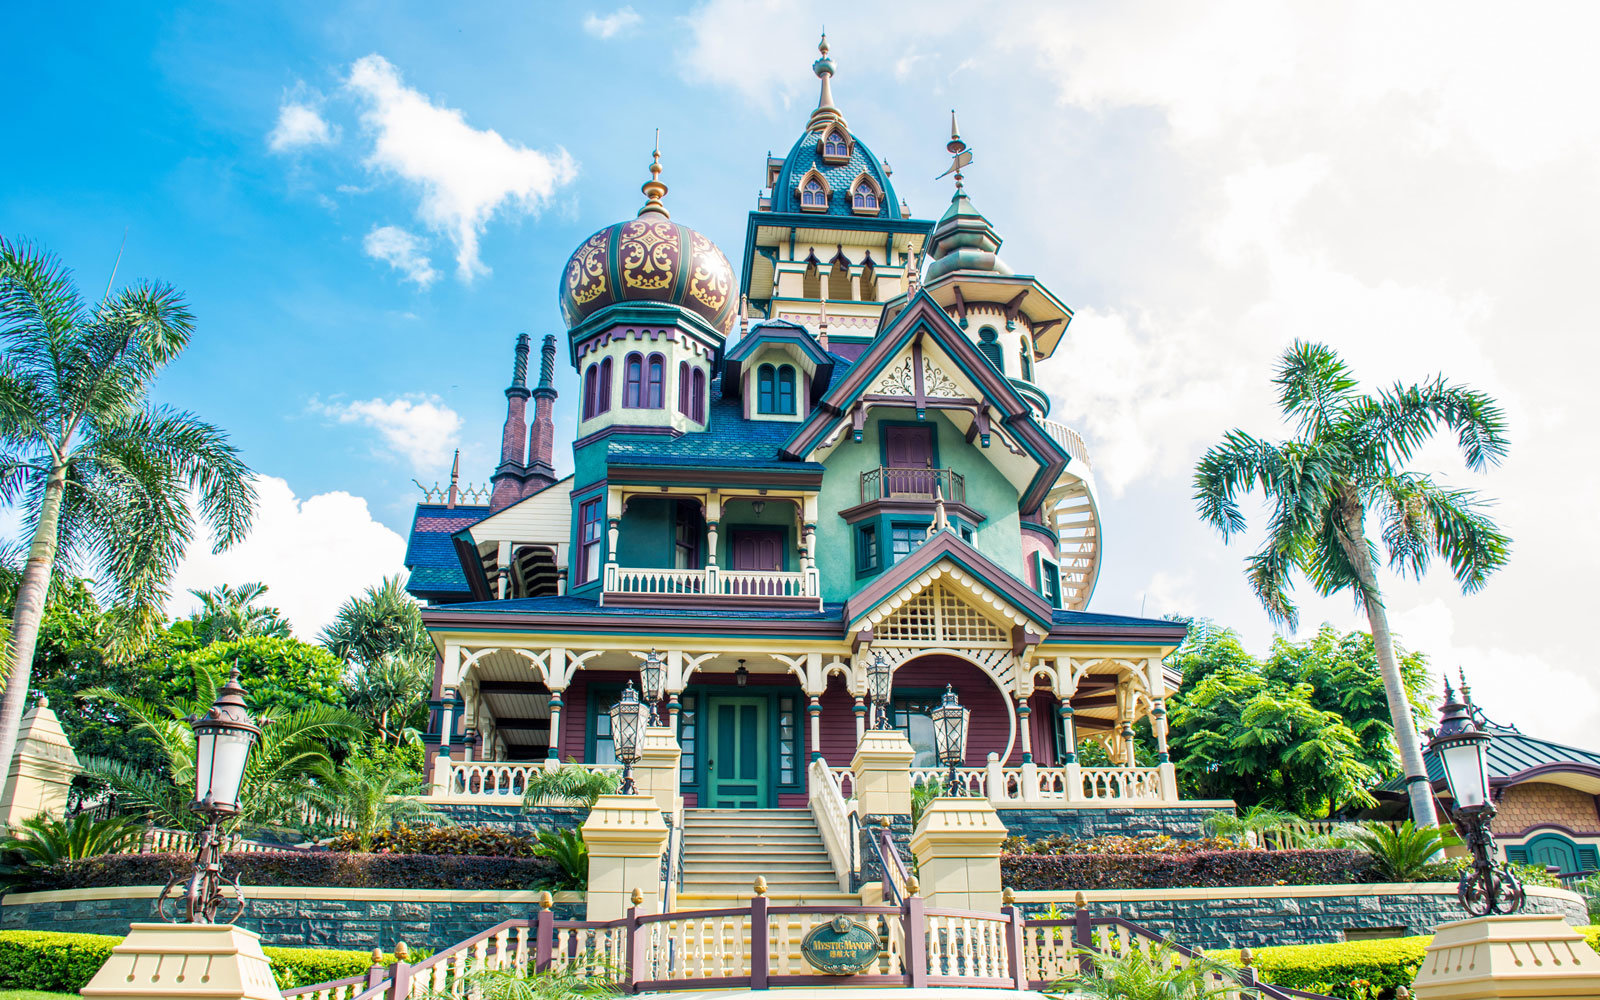 Mystic Manor Hong Kong